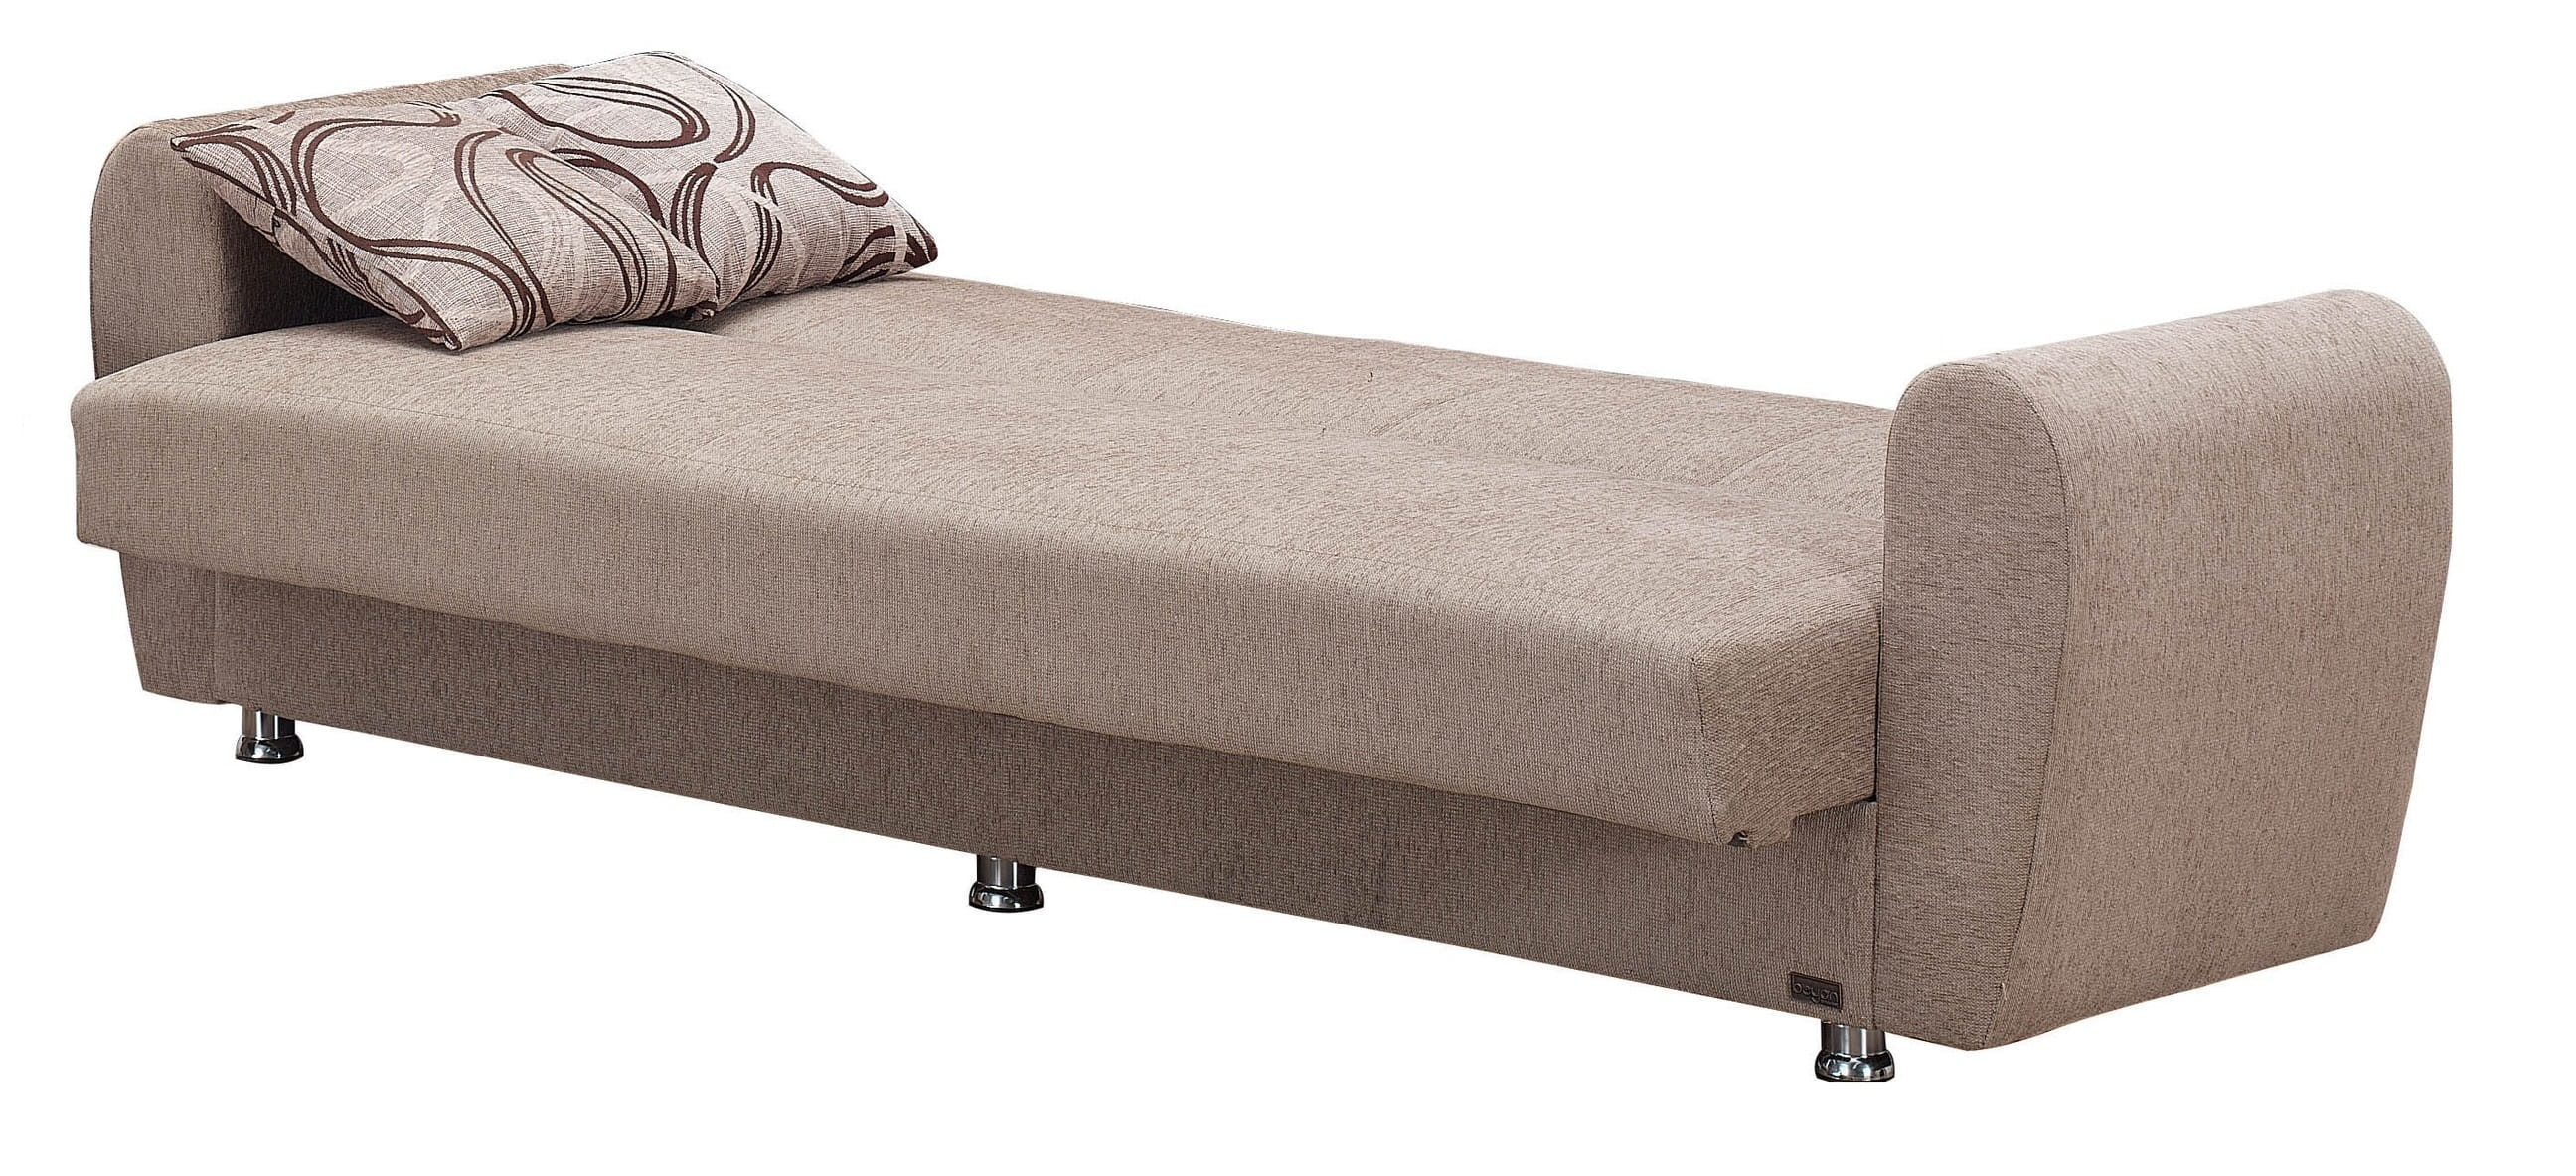 Colorado sofa bed by empire furniture usa for Sofa bed usa